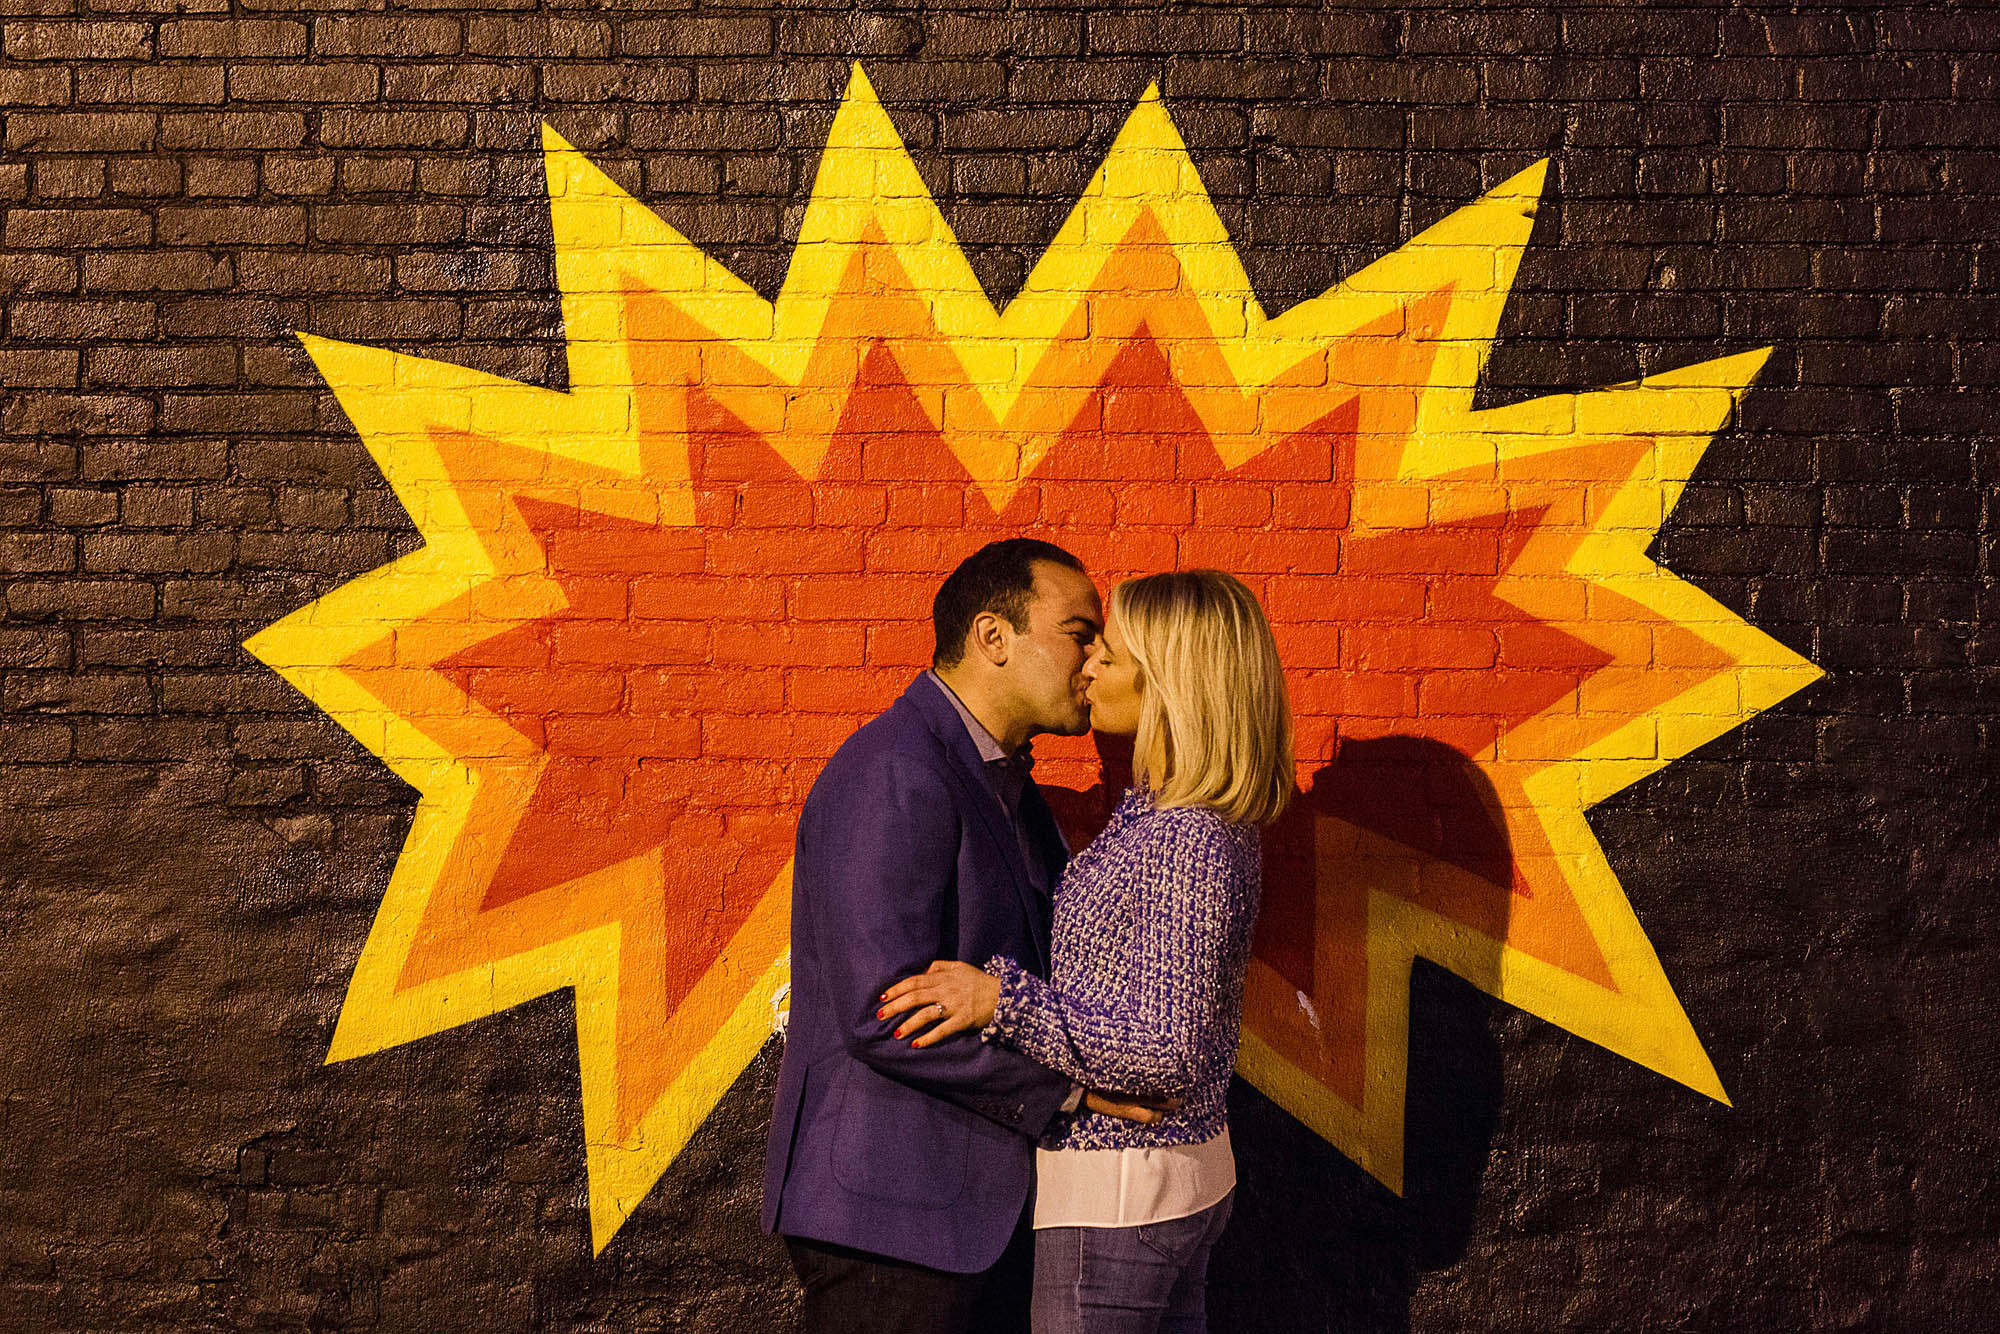 A picture taken from waist high of an engaged couple holding each other and kissing outside against a brown brick building with a a zig zag burst pattern in red, orange, and yellow painted on the wall directly behind them taken in a city in Ohio.